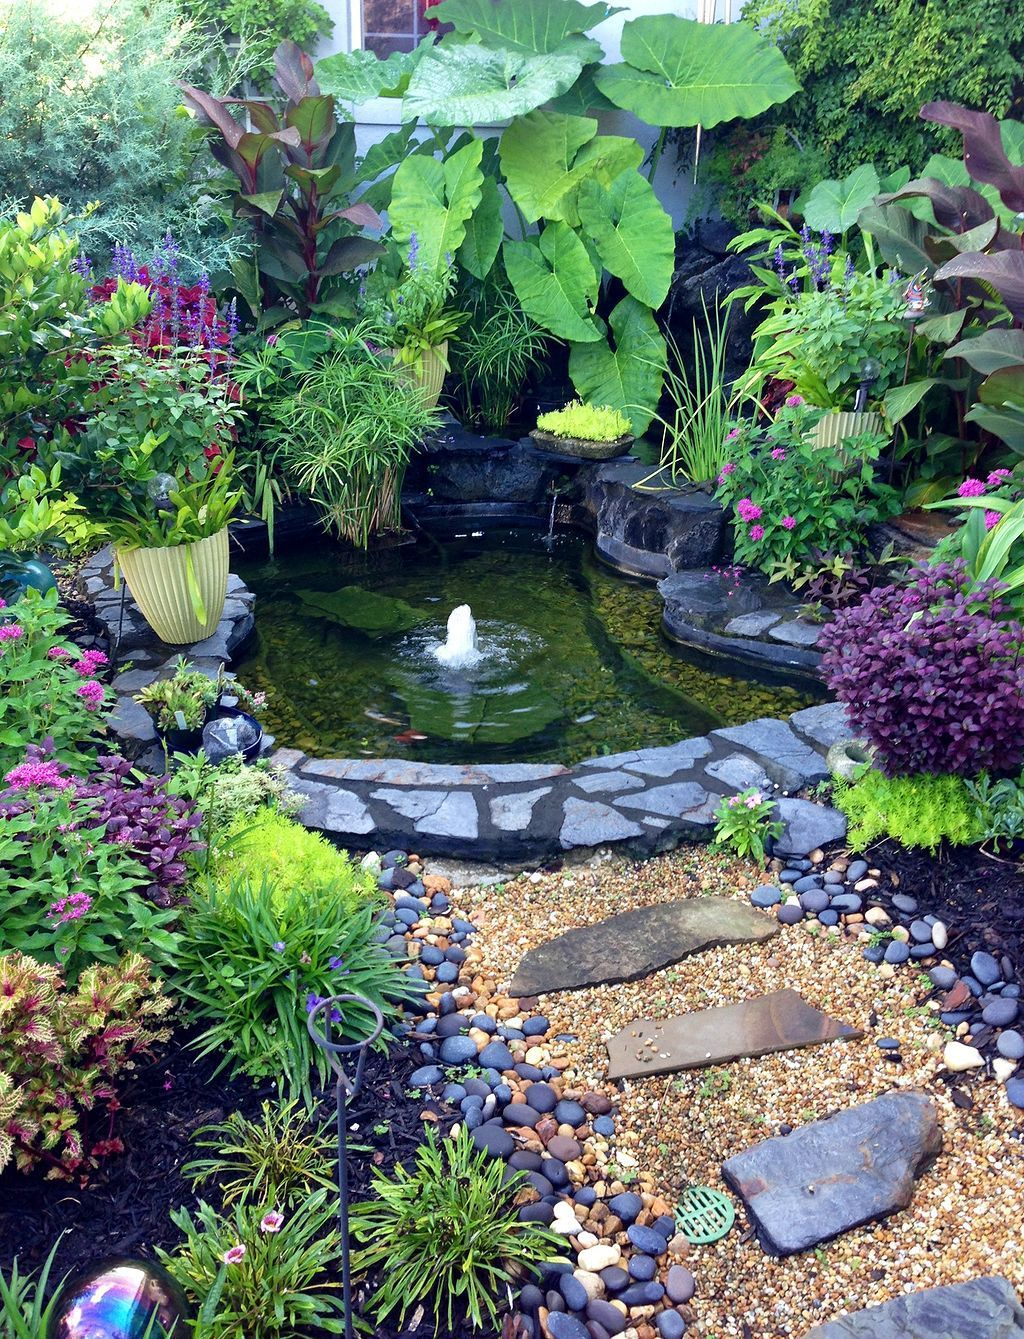 Tiny Backyard Ponds Ideas For Your Small Garden 19 Secret Gardens regarding Small Backyard Pond Ideas